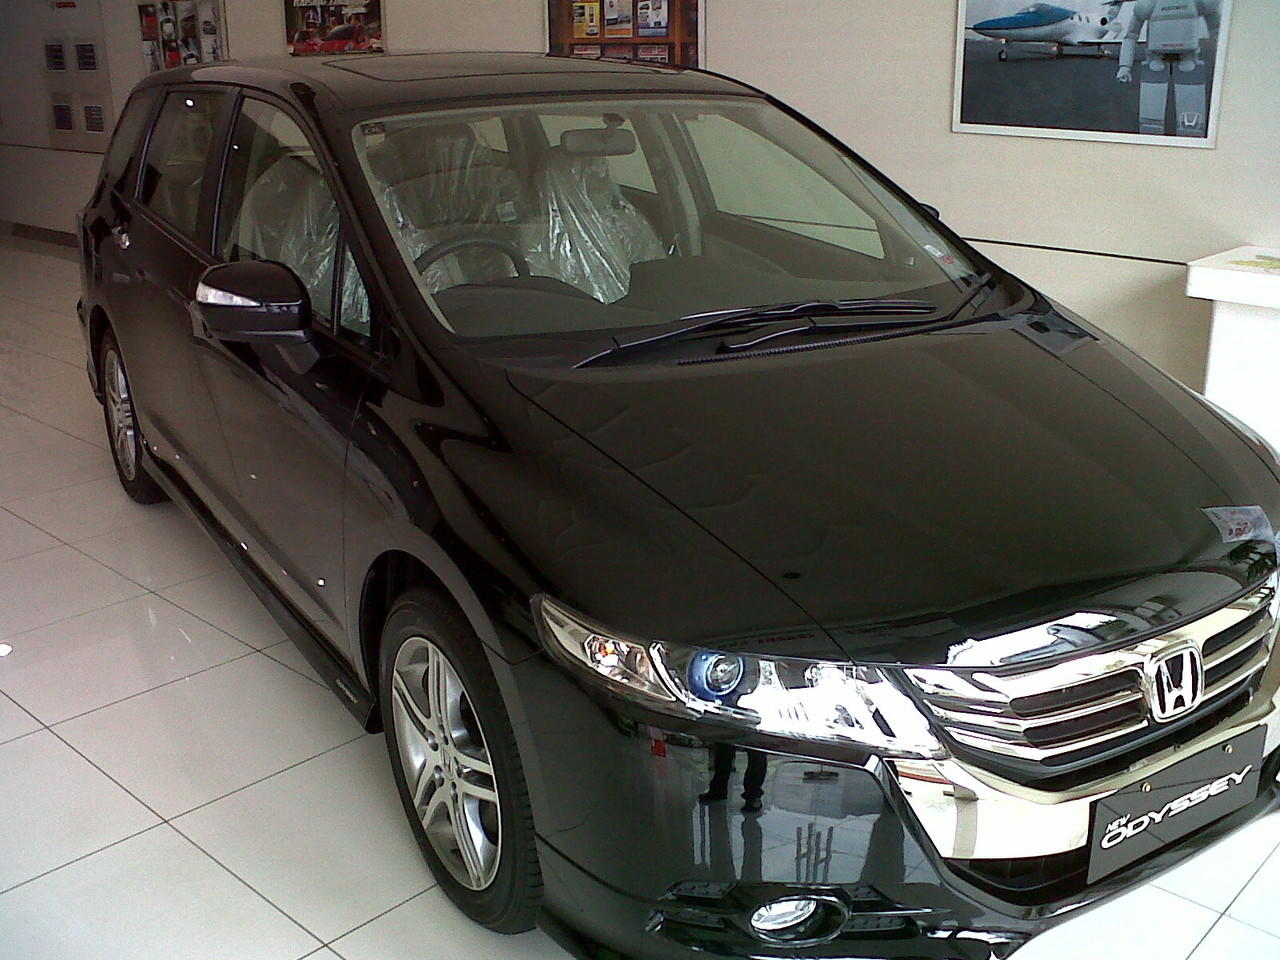 WTS MOBIL HONDA,All type! trade in welcome